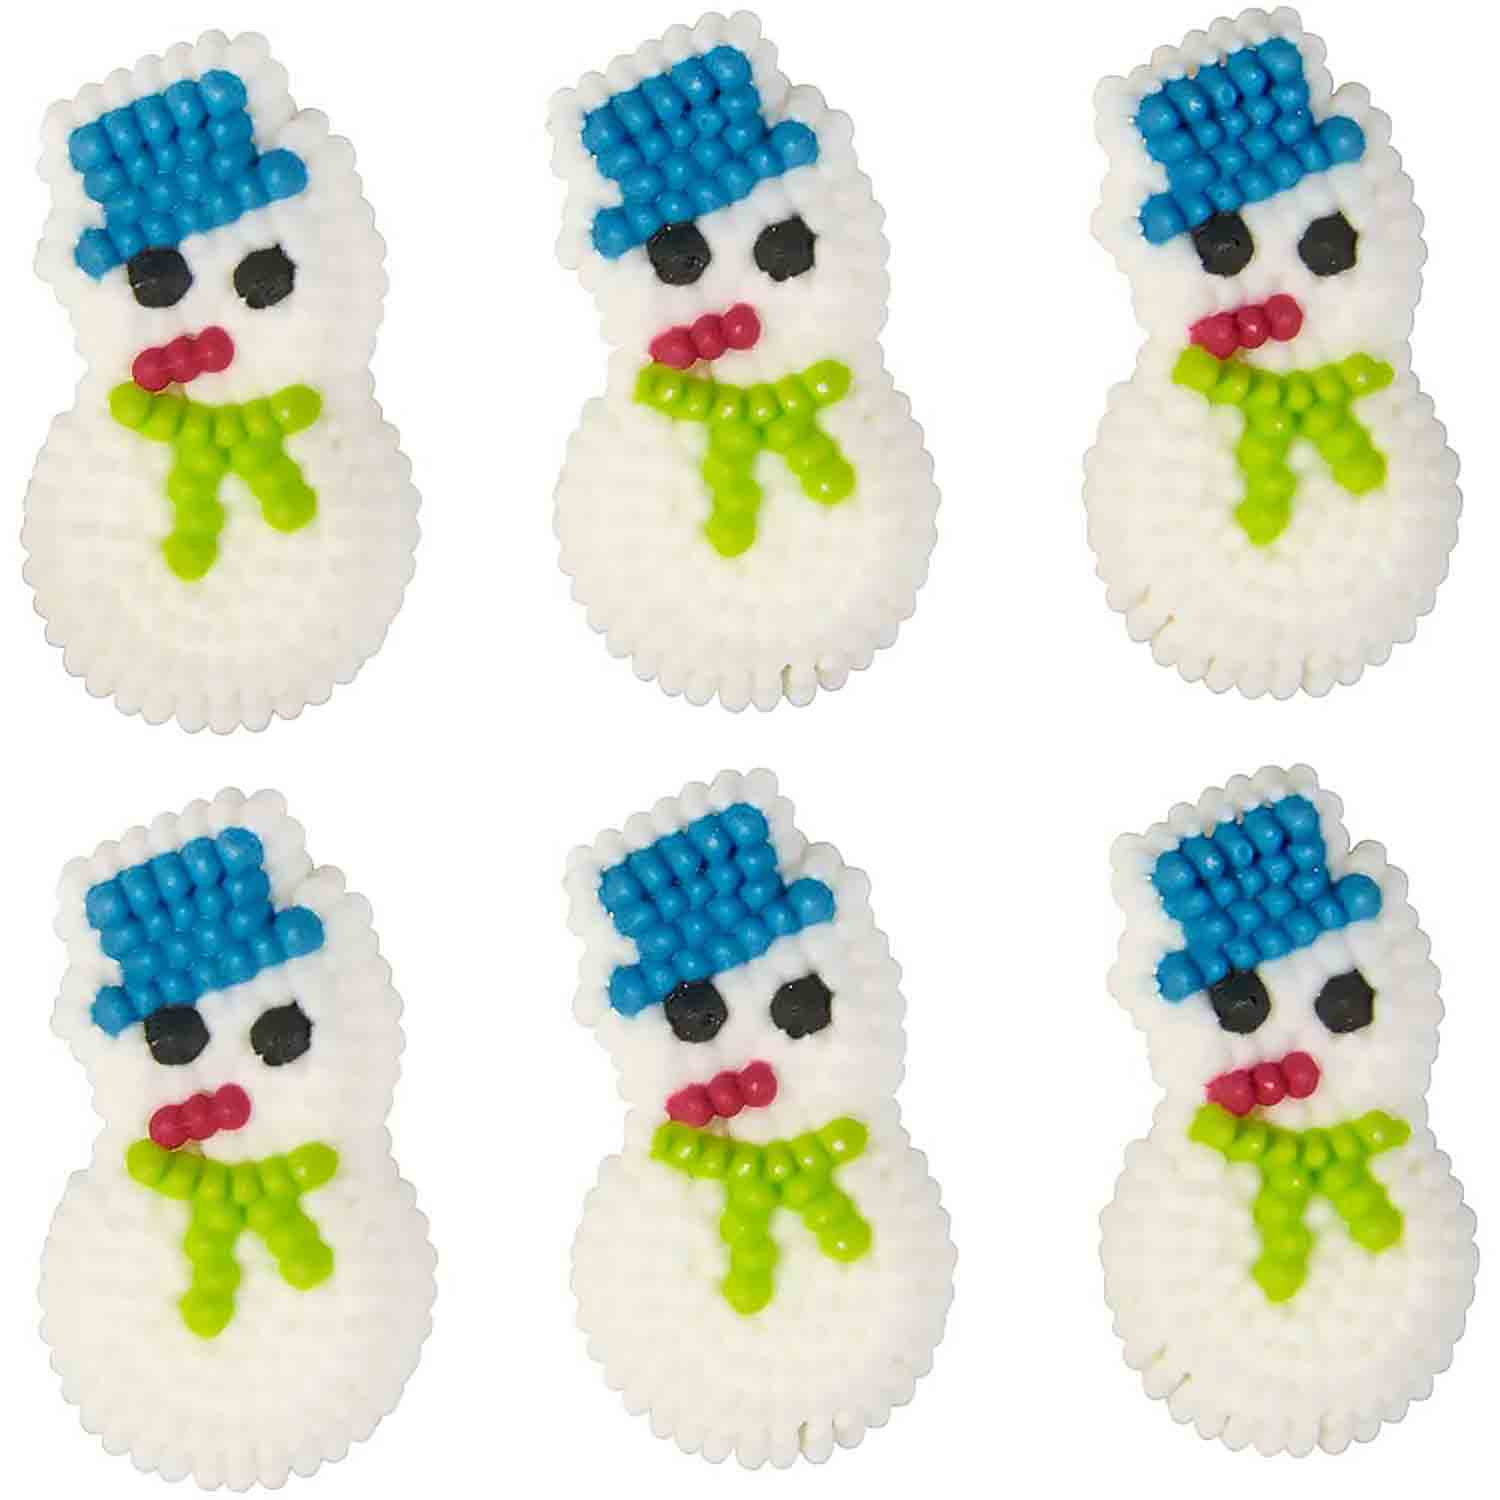 Snowman Icing Decorations